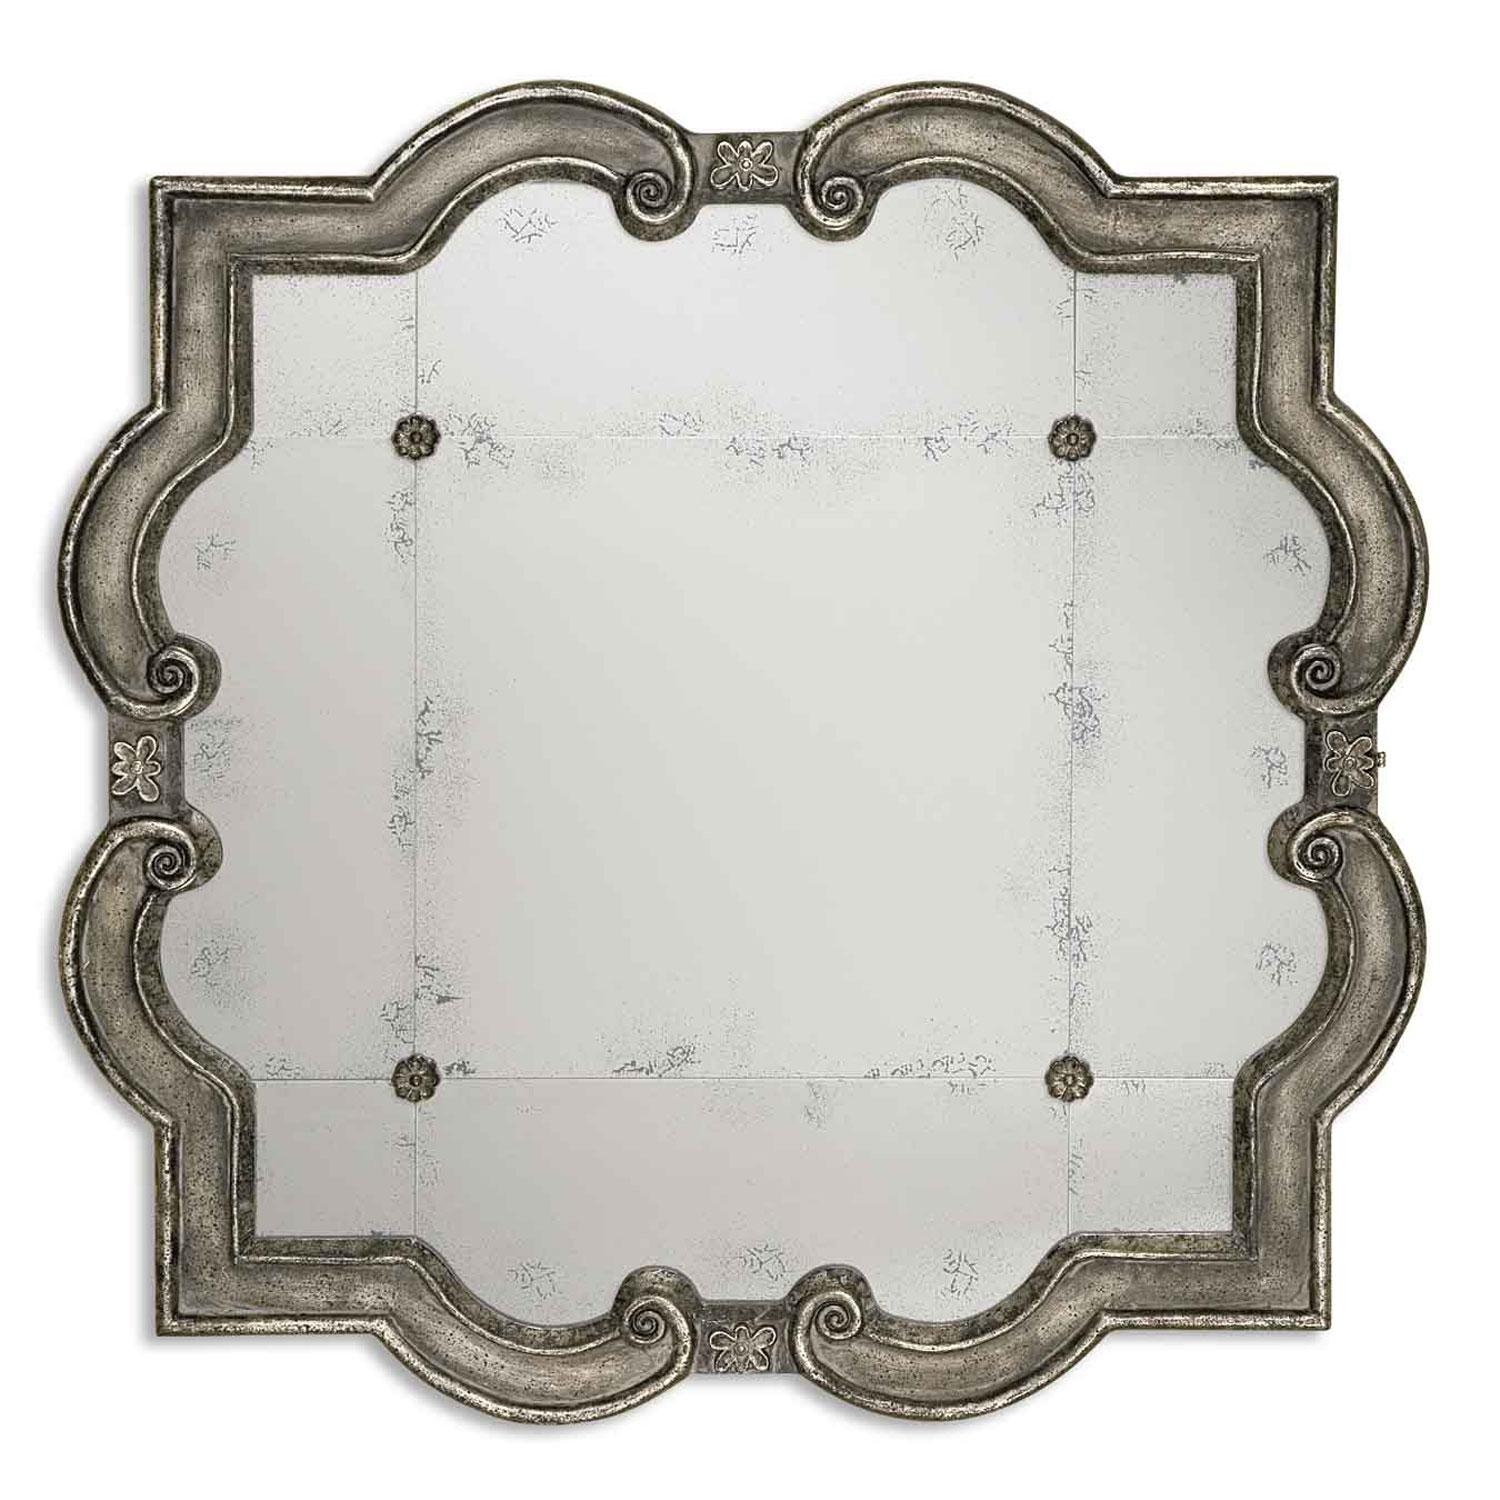 Prisca Small Mirror Uttermost Wall Mirror Mirrors Home Decor With Regard To Small Antique Mirrors (Image 14 of 20)